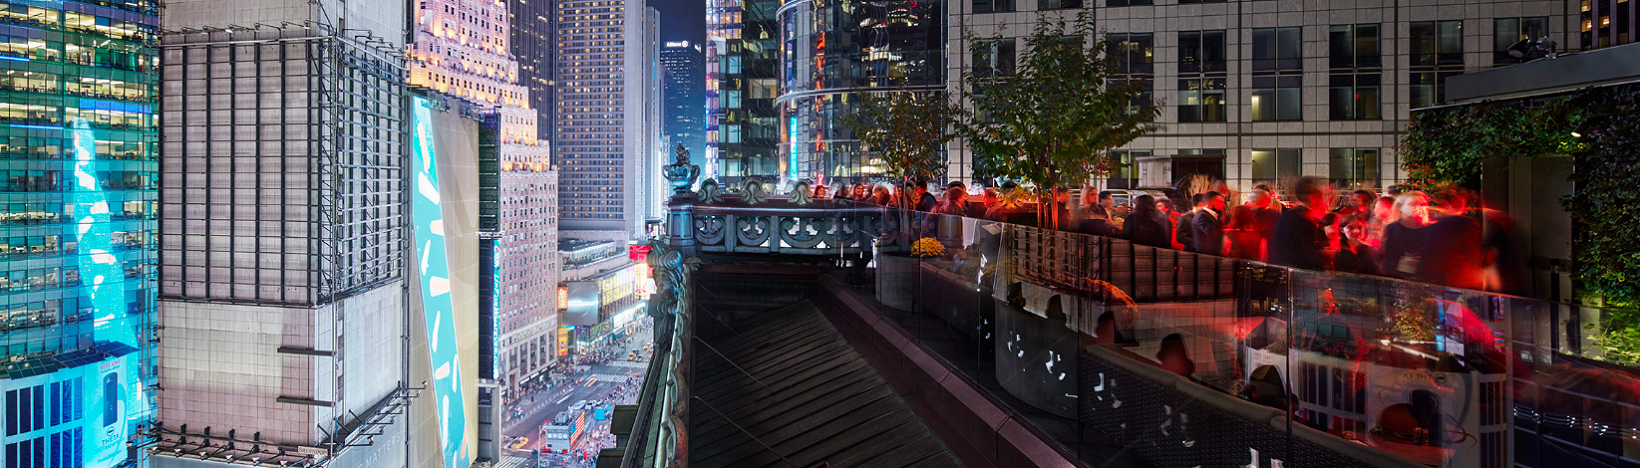 St  Cloud Rooftop Bar in Times Square NYC | The Knickerbocker